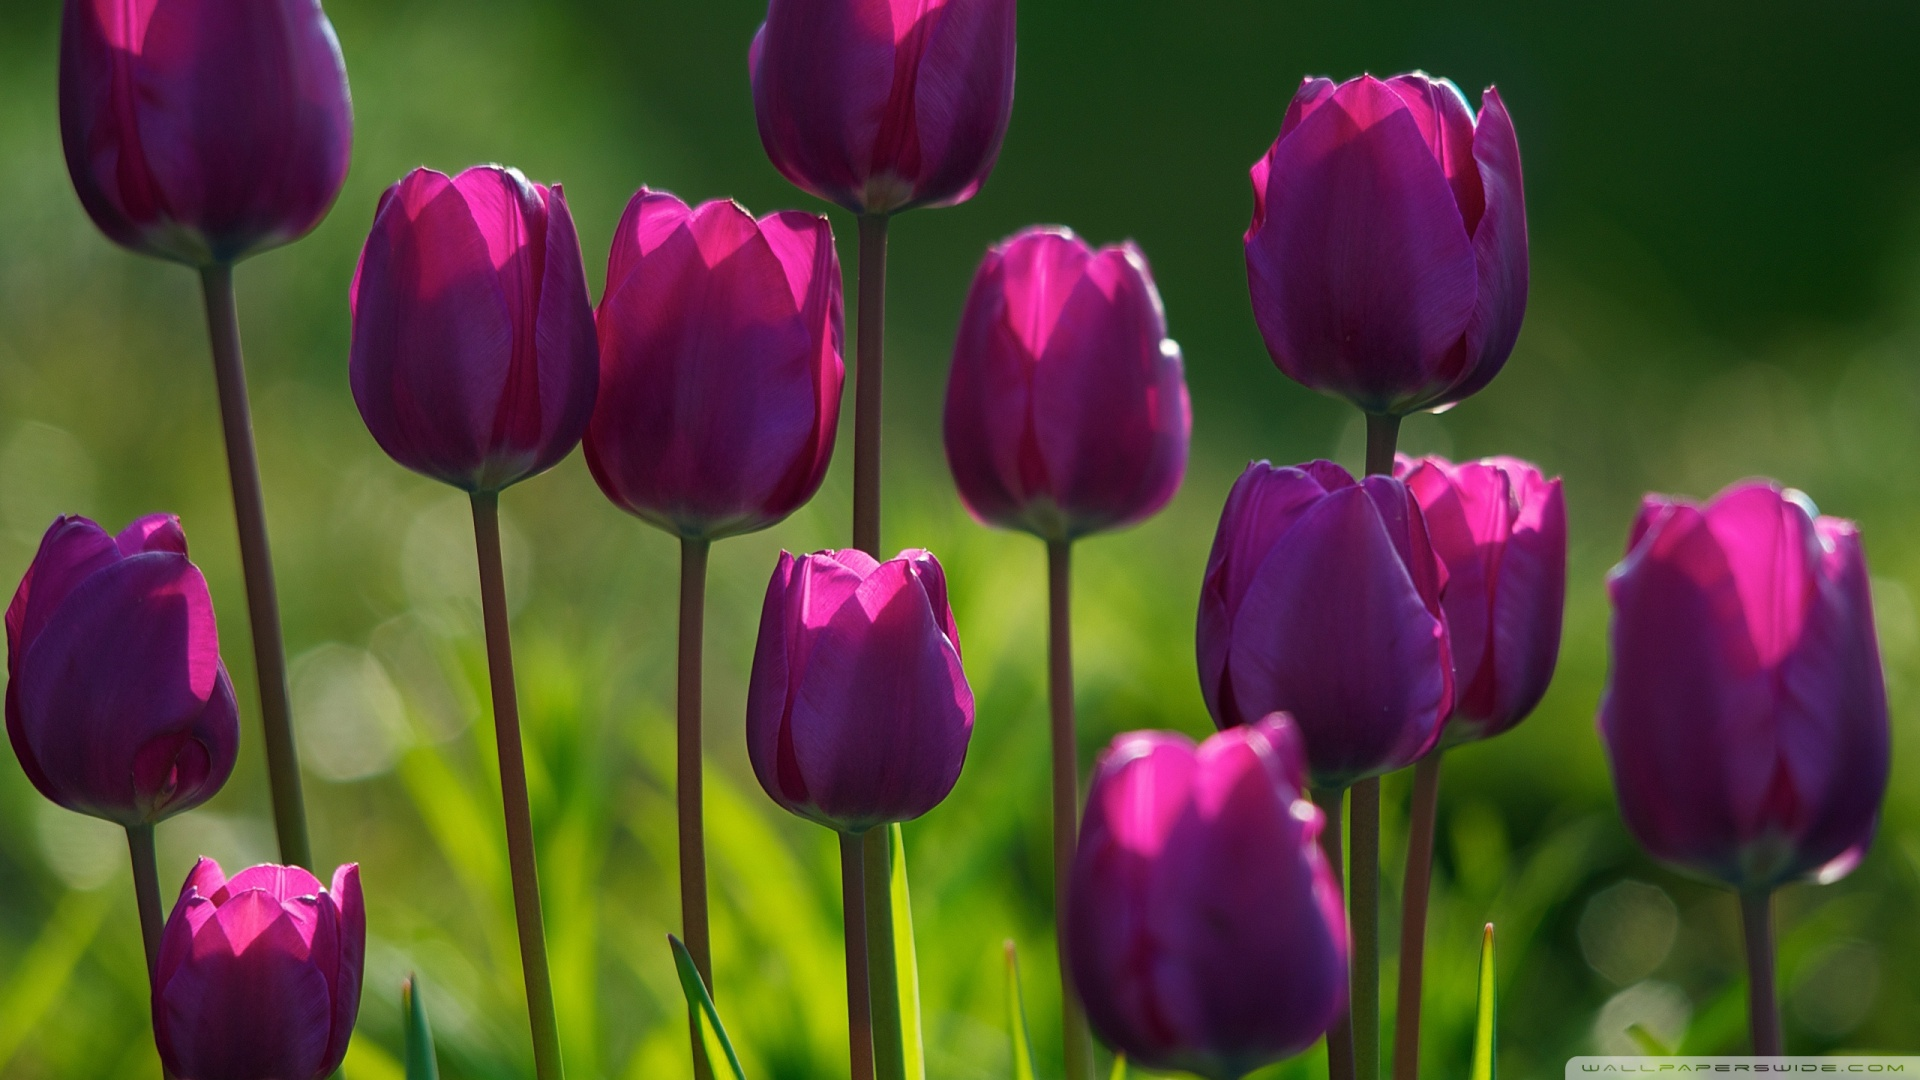 Purple Tulips Hd Desktop Wallpaper High Definition Fullscreen